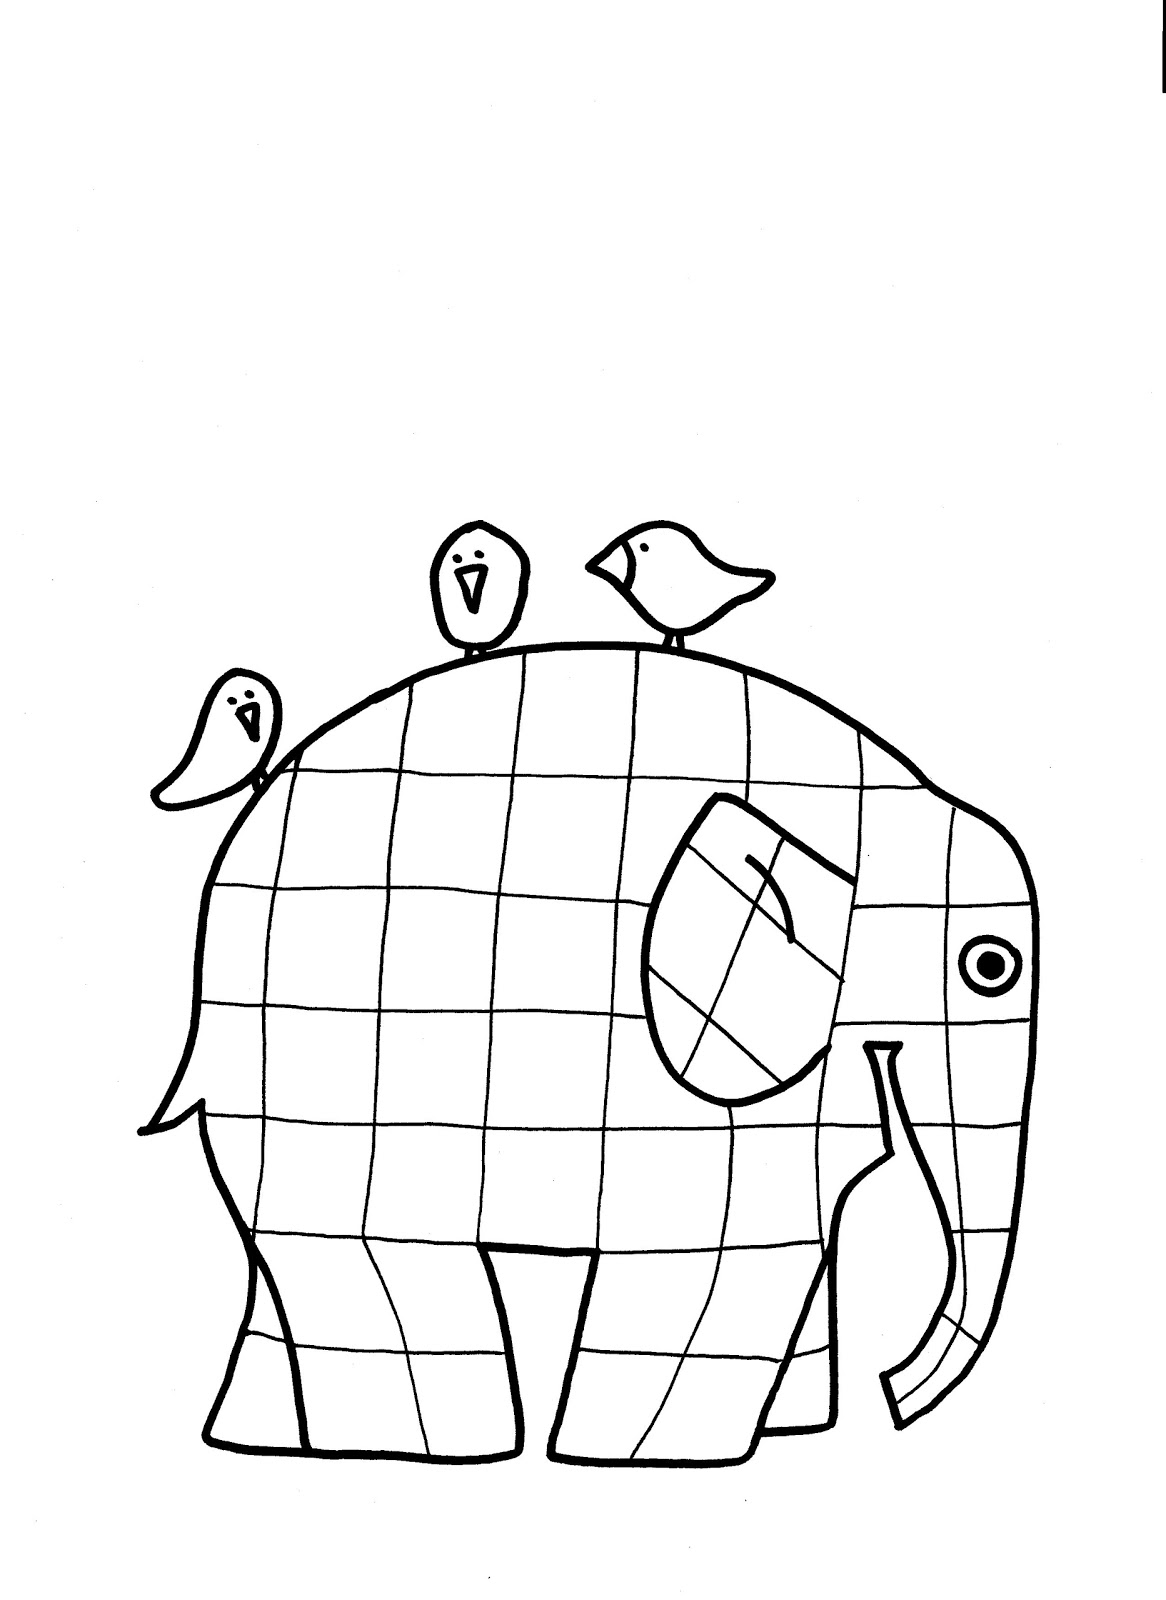 elmer the elephant coloring page elmer the elephant coloring sheet coloring pages elmer coloring elephant the page